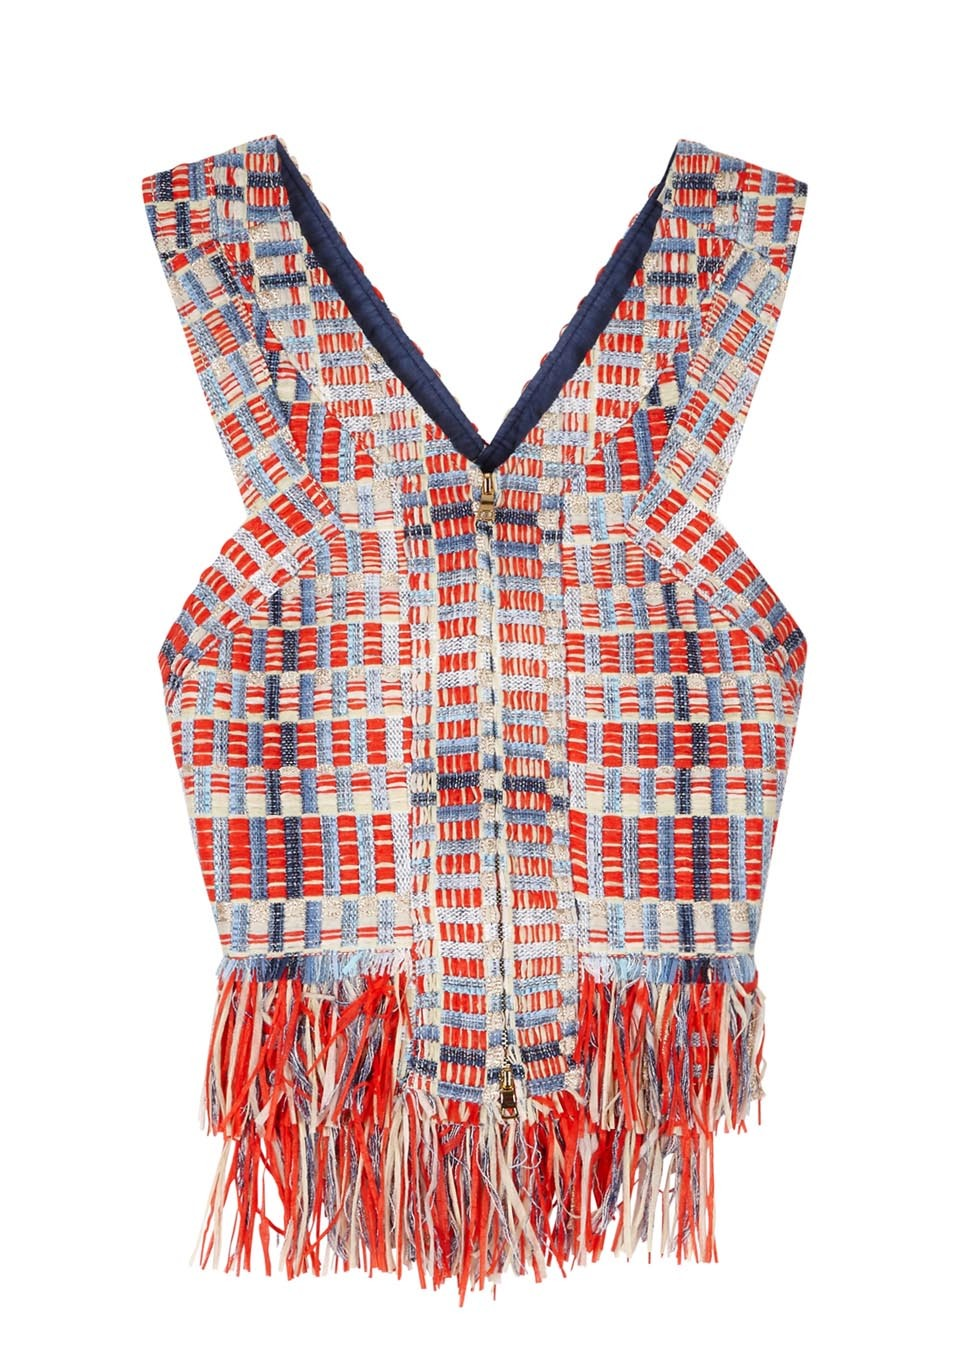 Tara Fringed Tweed Top - neckline: low v-neck; sleeve style: sleeveless; length: cropped; pattern: herringbone/tweed; predominant colour: true red; secondary colour: pale blue; occasions: casual; style: top; fibres: polyester/polyamide - mix; fit: tight; sleeve length: sleeveless; pattern type: fabric; pattern size: standard; texture group: woven light midweight; multicoloured: multicoloured; season: s/s 2016; wardrobe: highlight